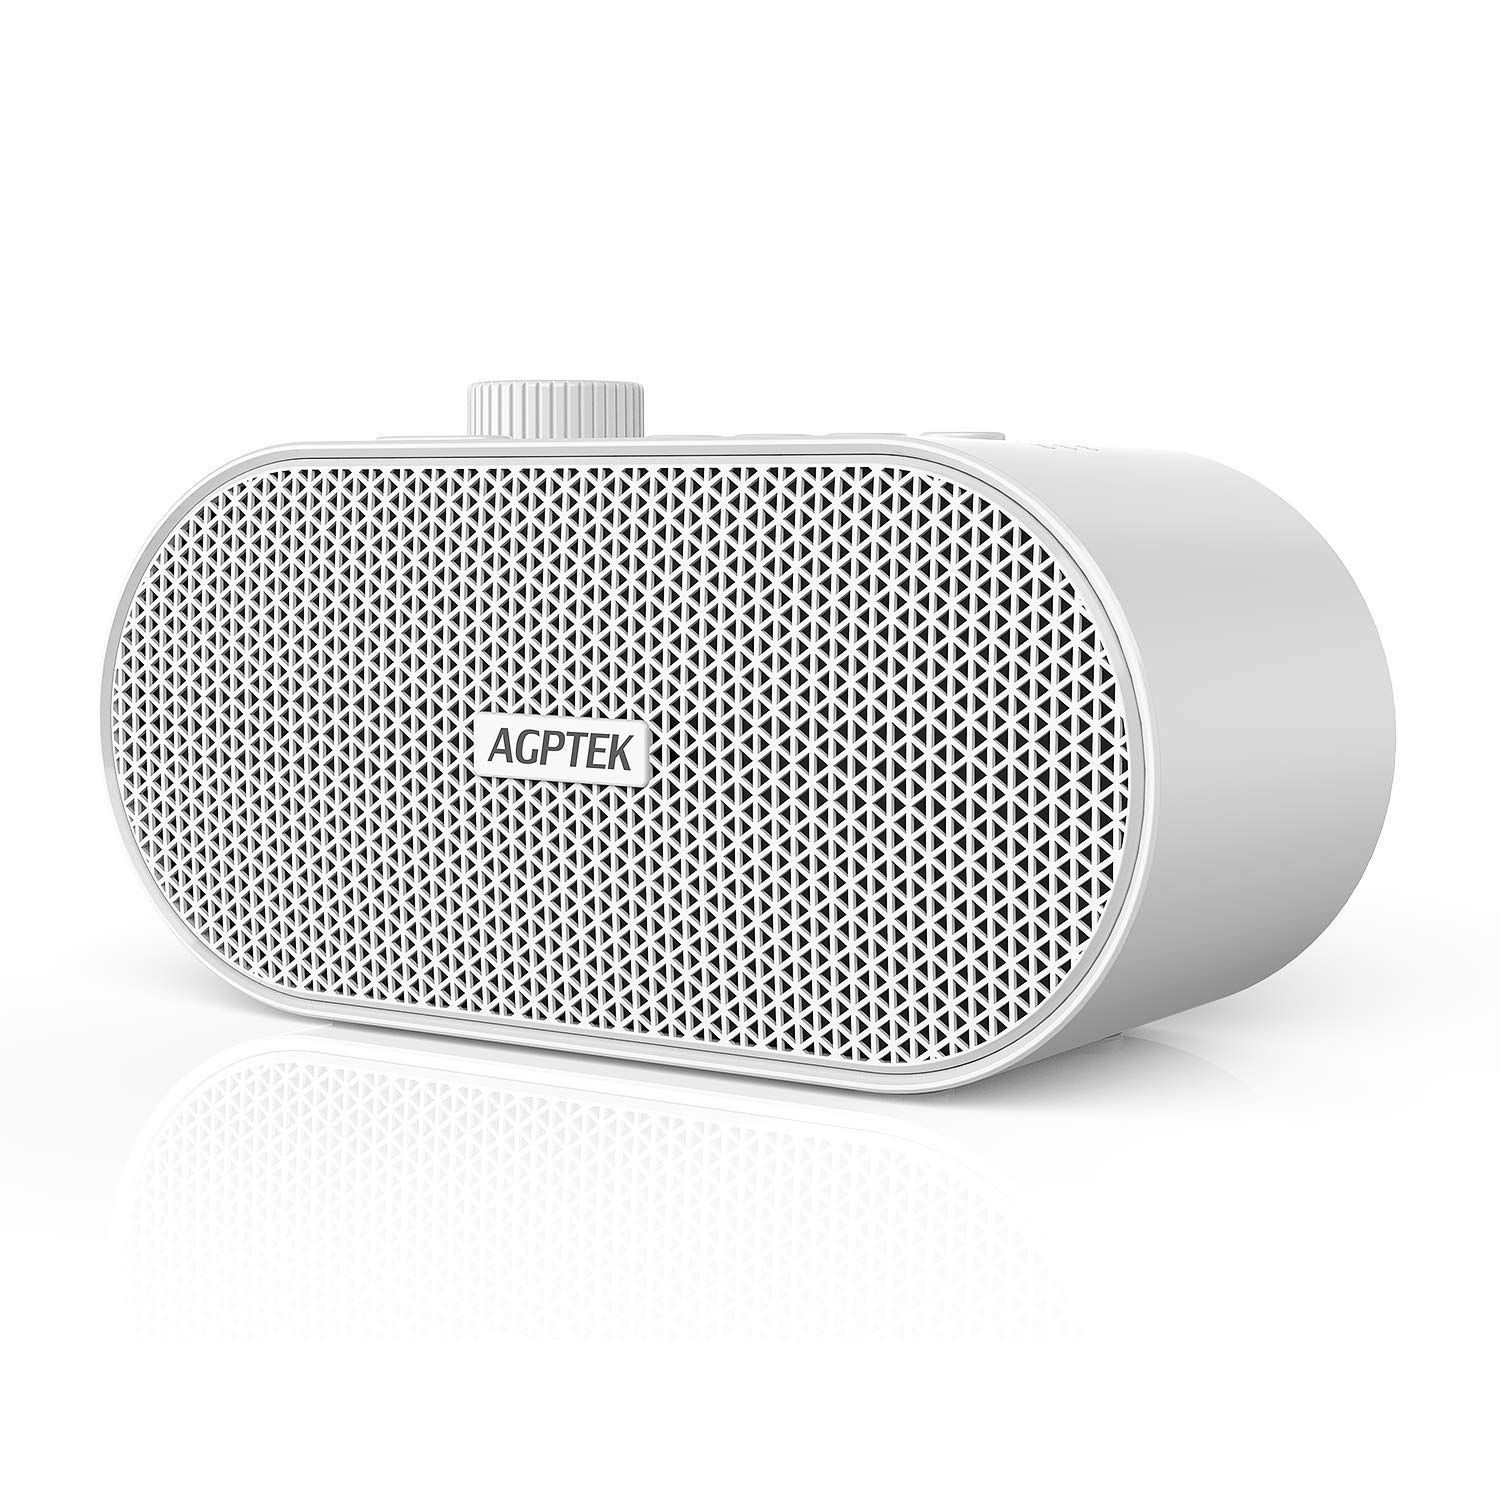 Kids AGPTEK Portable Sleep Therapy Nature Sounds Machine with 26 Soothing Sound Include White Noise,Fan,Ocean,Rain,Stream and Summer Night for Baby Adults Sleep White Noise Machine